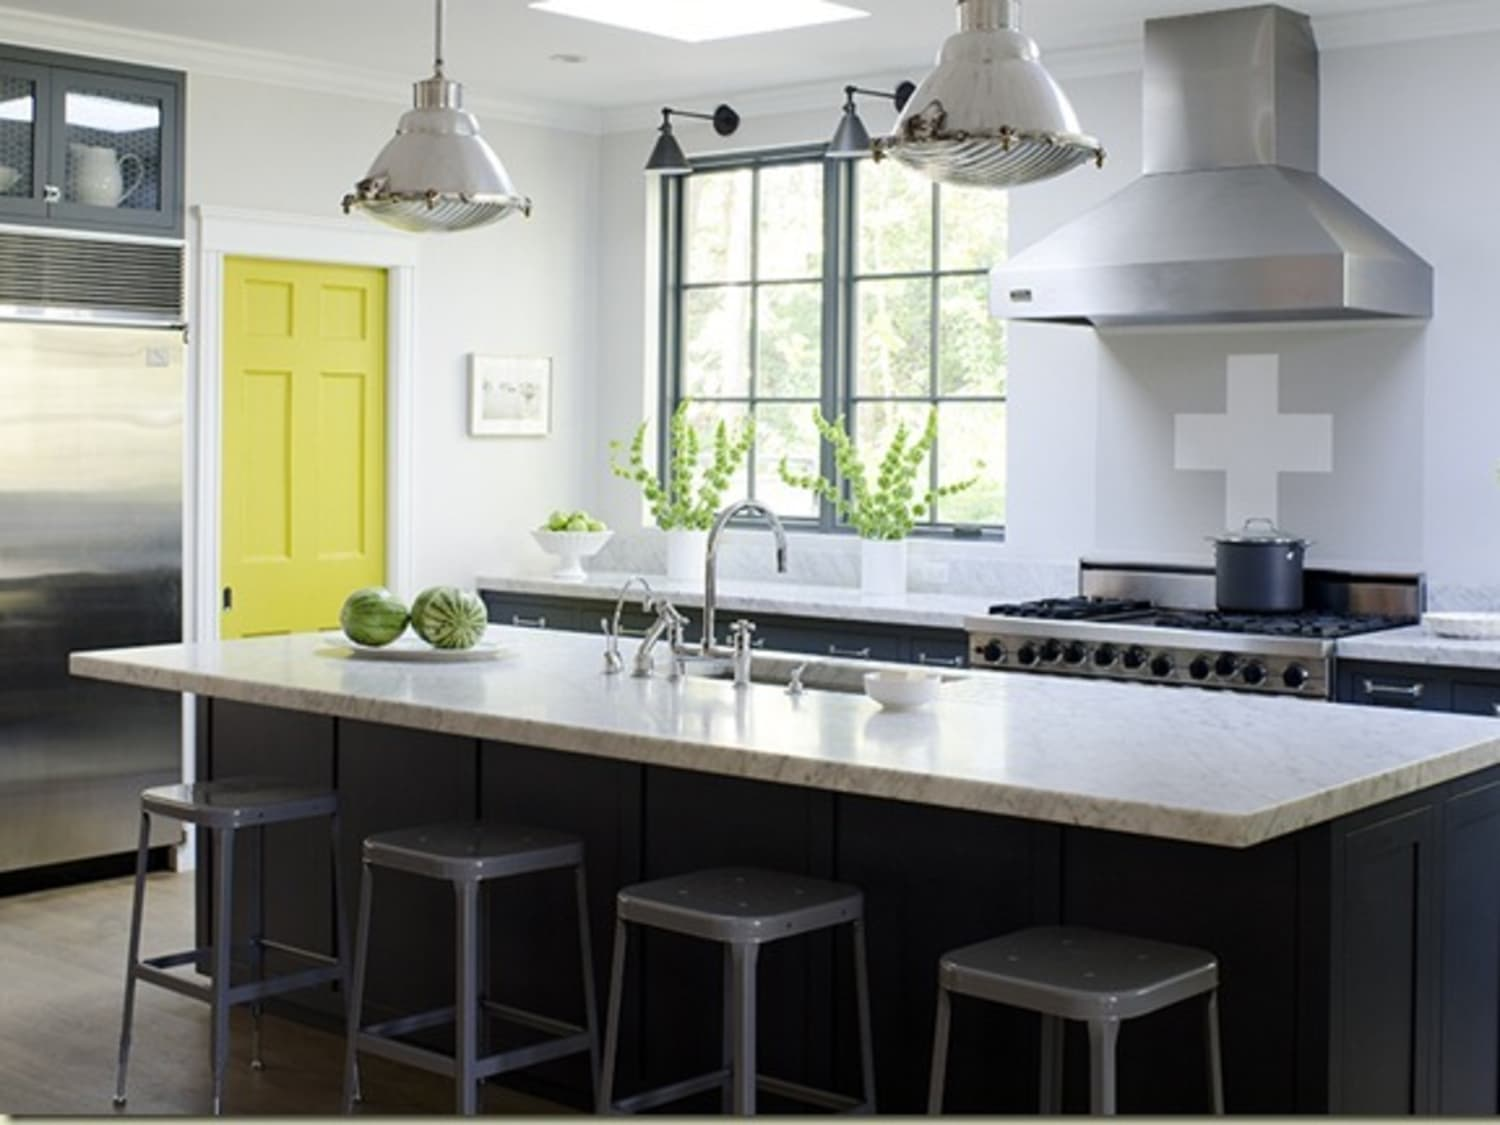 10 Kitchens Without Upper Cabinets   Kitchn on formal dining cabinet ideas, galley kitchen curtain ideas, galley kitchen countertop ideas, small galley kitchen ideas, galley bath ideas, galley kitchen colors, double oven cabinet ideas, galley bar ideas, powder room cabinet ideas, galley kitchen with dark cabinets, galley kitchen makeovers ideas, walk-in pantry cabinet ideas, galley kitchen storage ideas, galley closet ideas, galley kitchen flooring ideas, galley kitchens with white cabinets, galley kitchen shelf ideas, fridge cabinet ideas, galley kitchen designs, galley kitchen backsplash ideas,